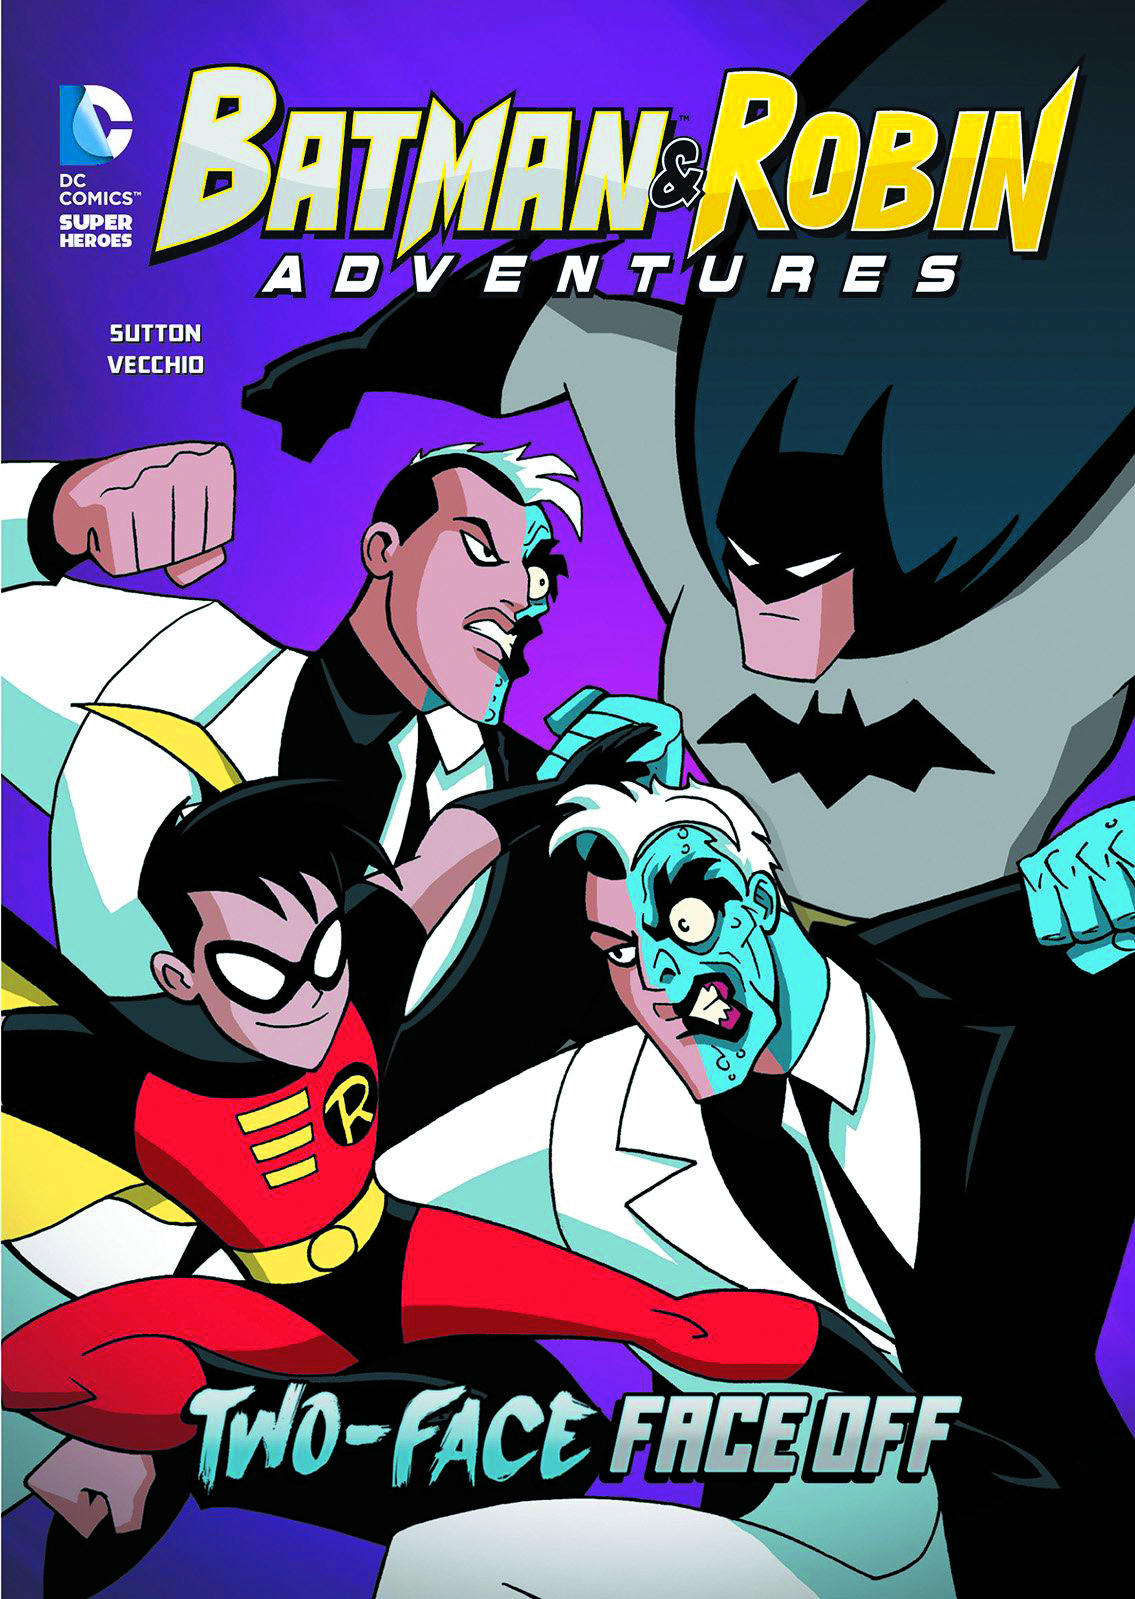 BATMAN & ROBIN ADV YR TP TWO FACE FACE OFF